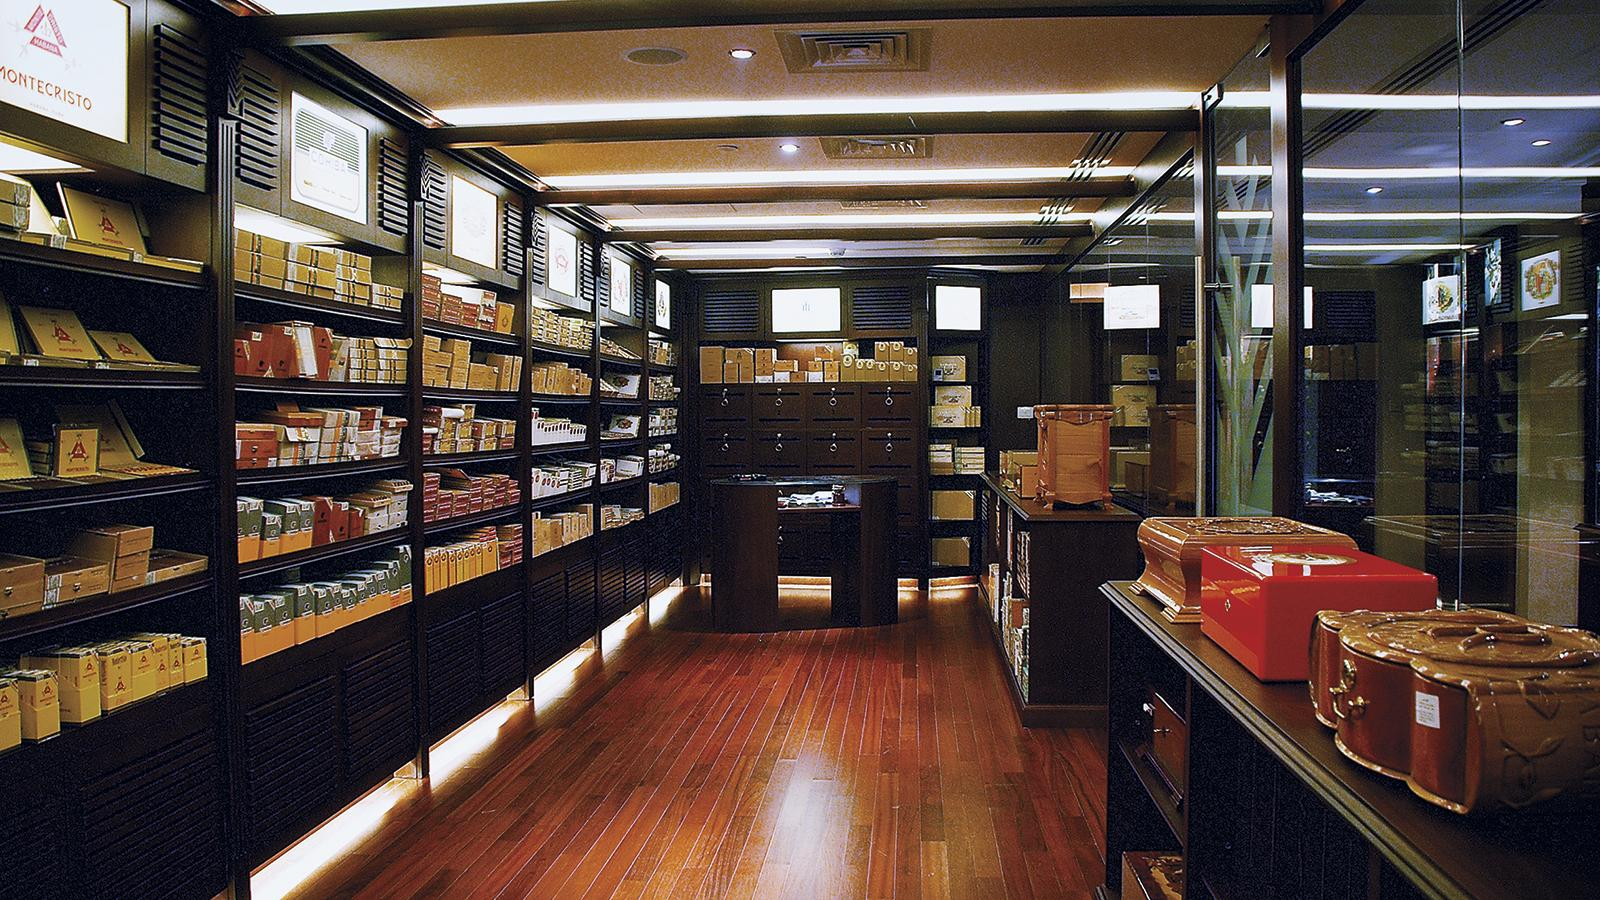 Americans can now legally purchase Cuban cigars from retailers in third-party countries, such as this Casa del Habano located in Dubai.